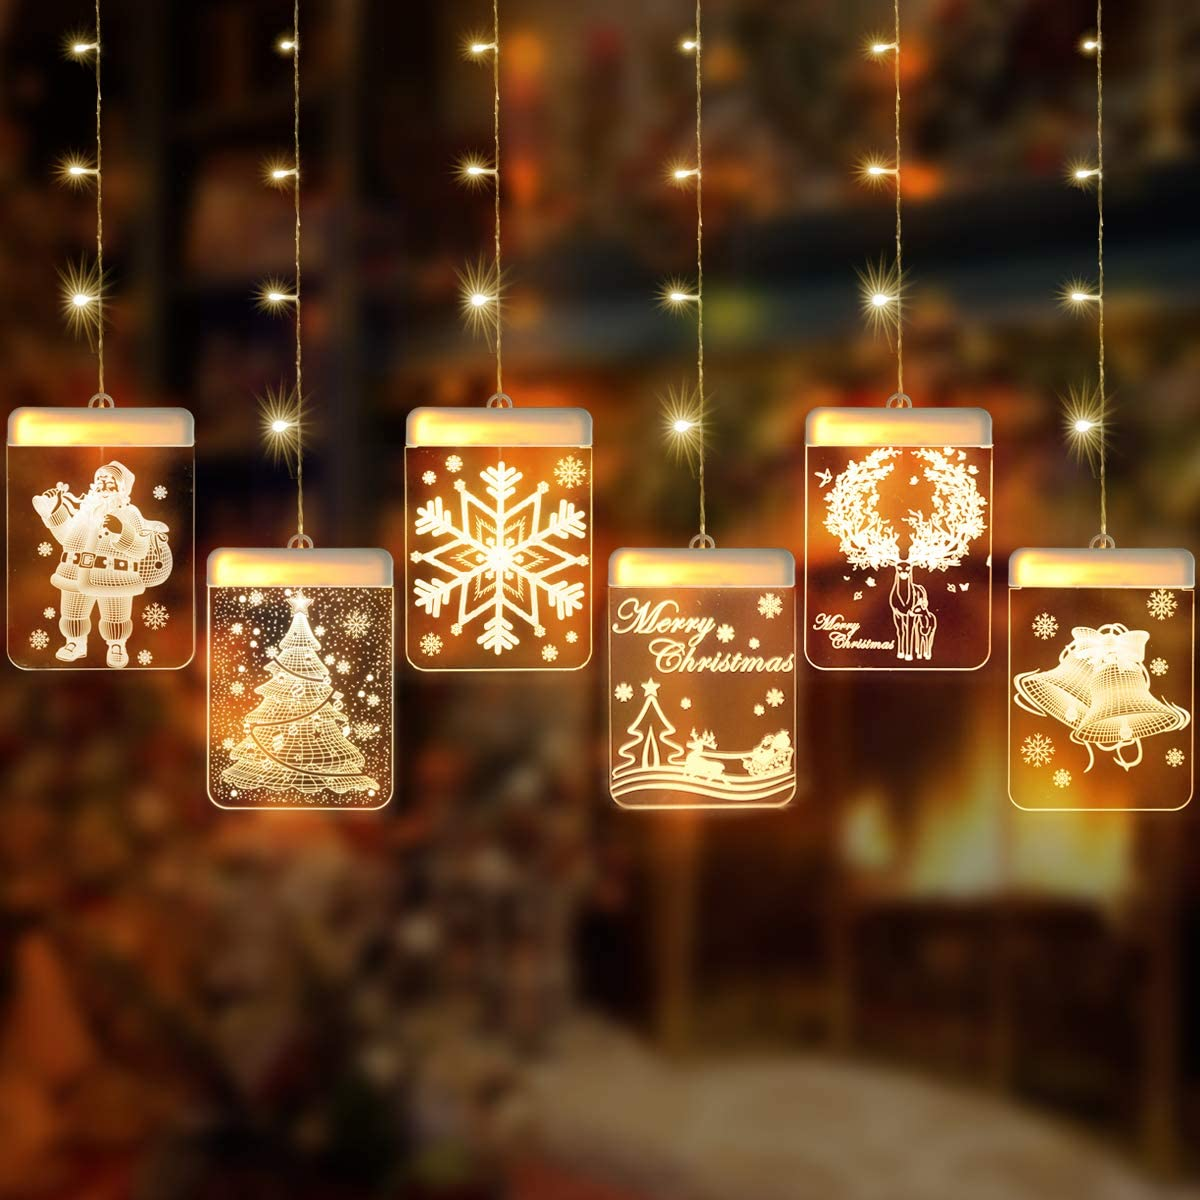 FYYZY Christmas Decorative Novelty Hanging 3D Lights with Suction Cup and Remote Control for Indoor Windows Pathway Patio Bedroom Warm White (Multi)